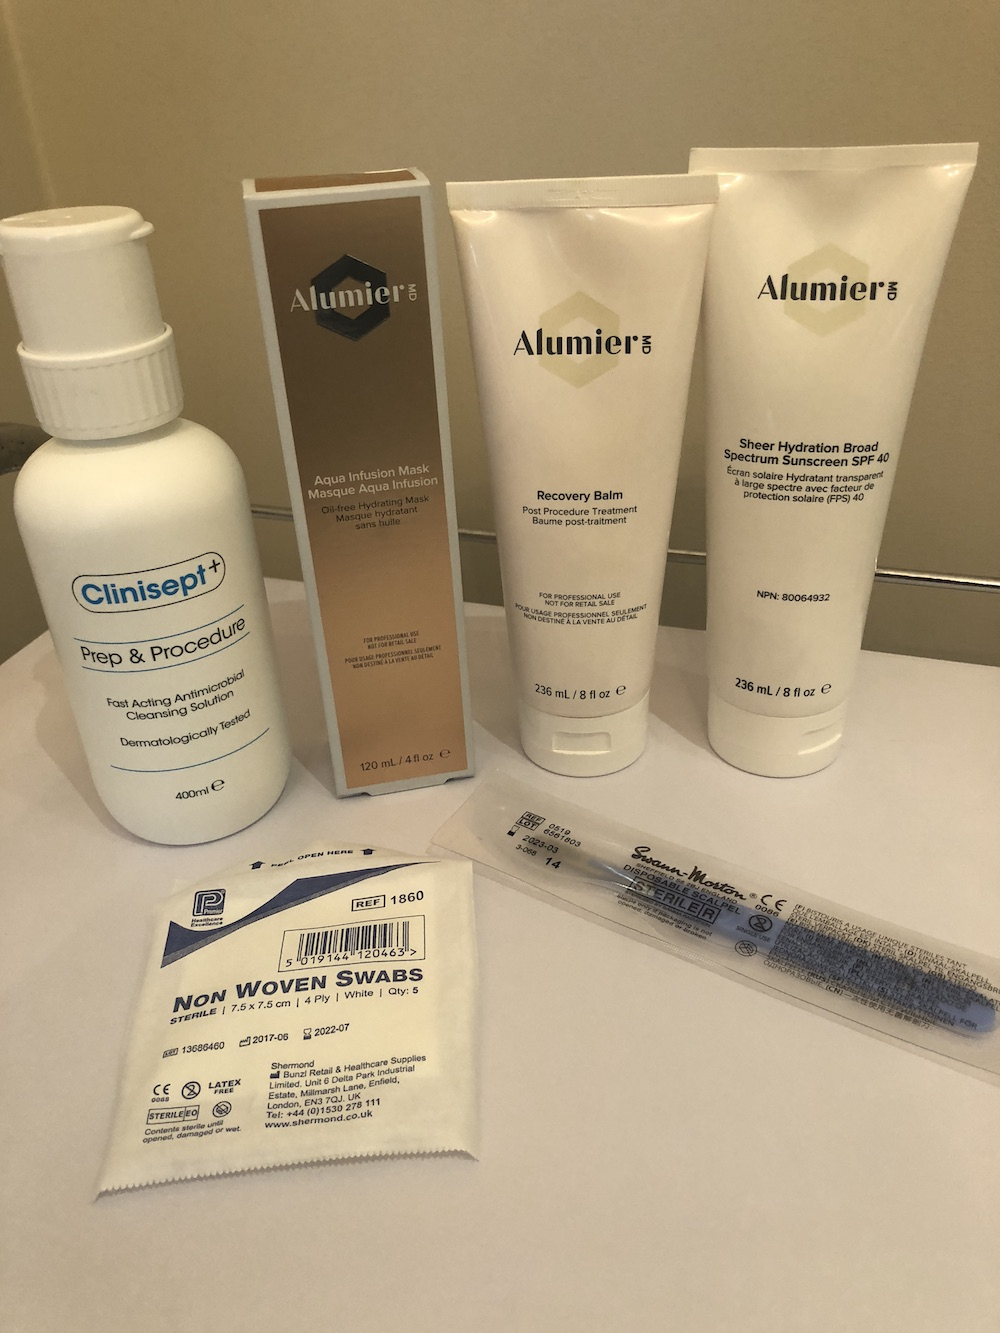 Alumier products